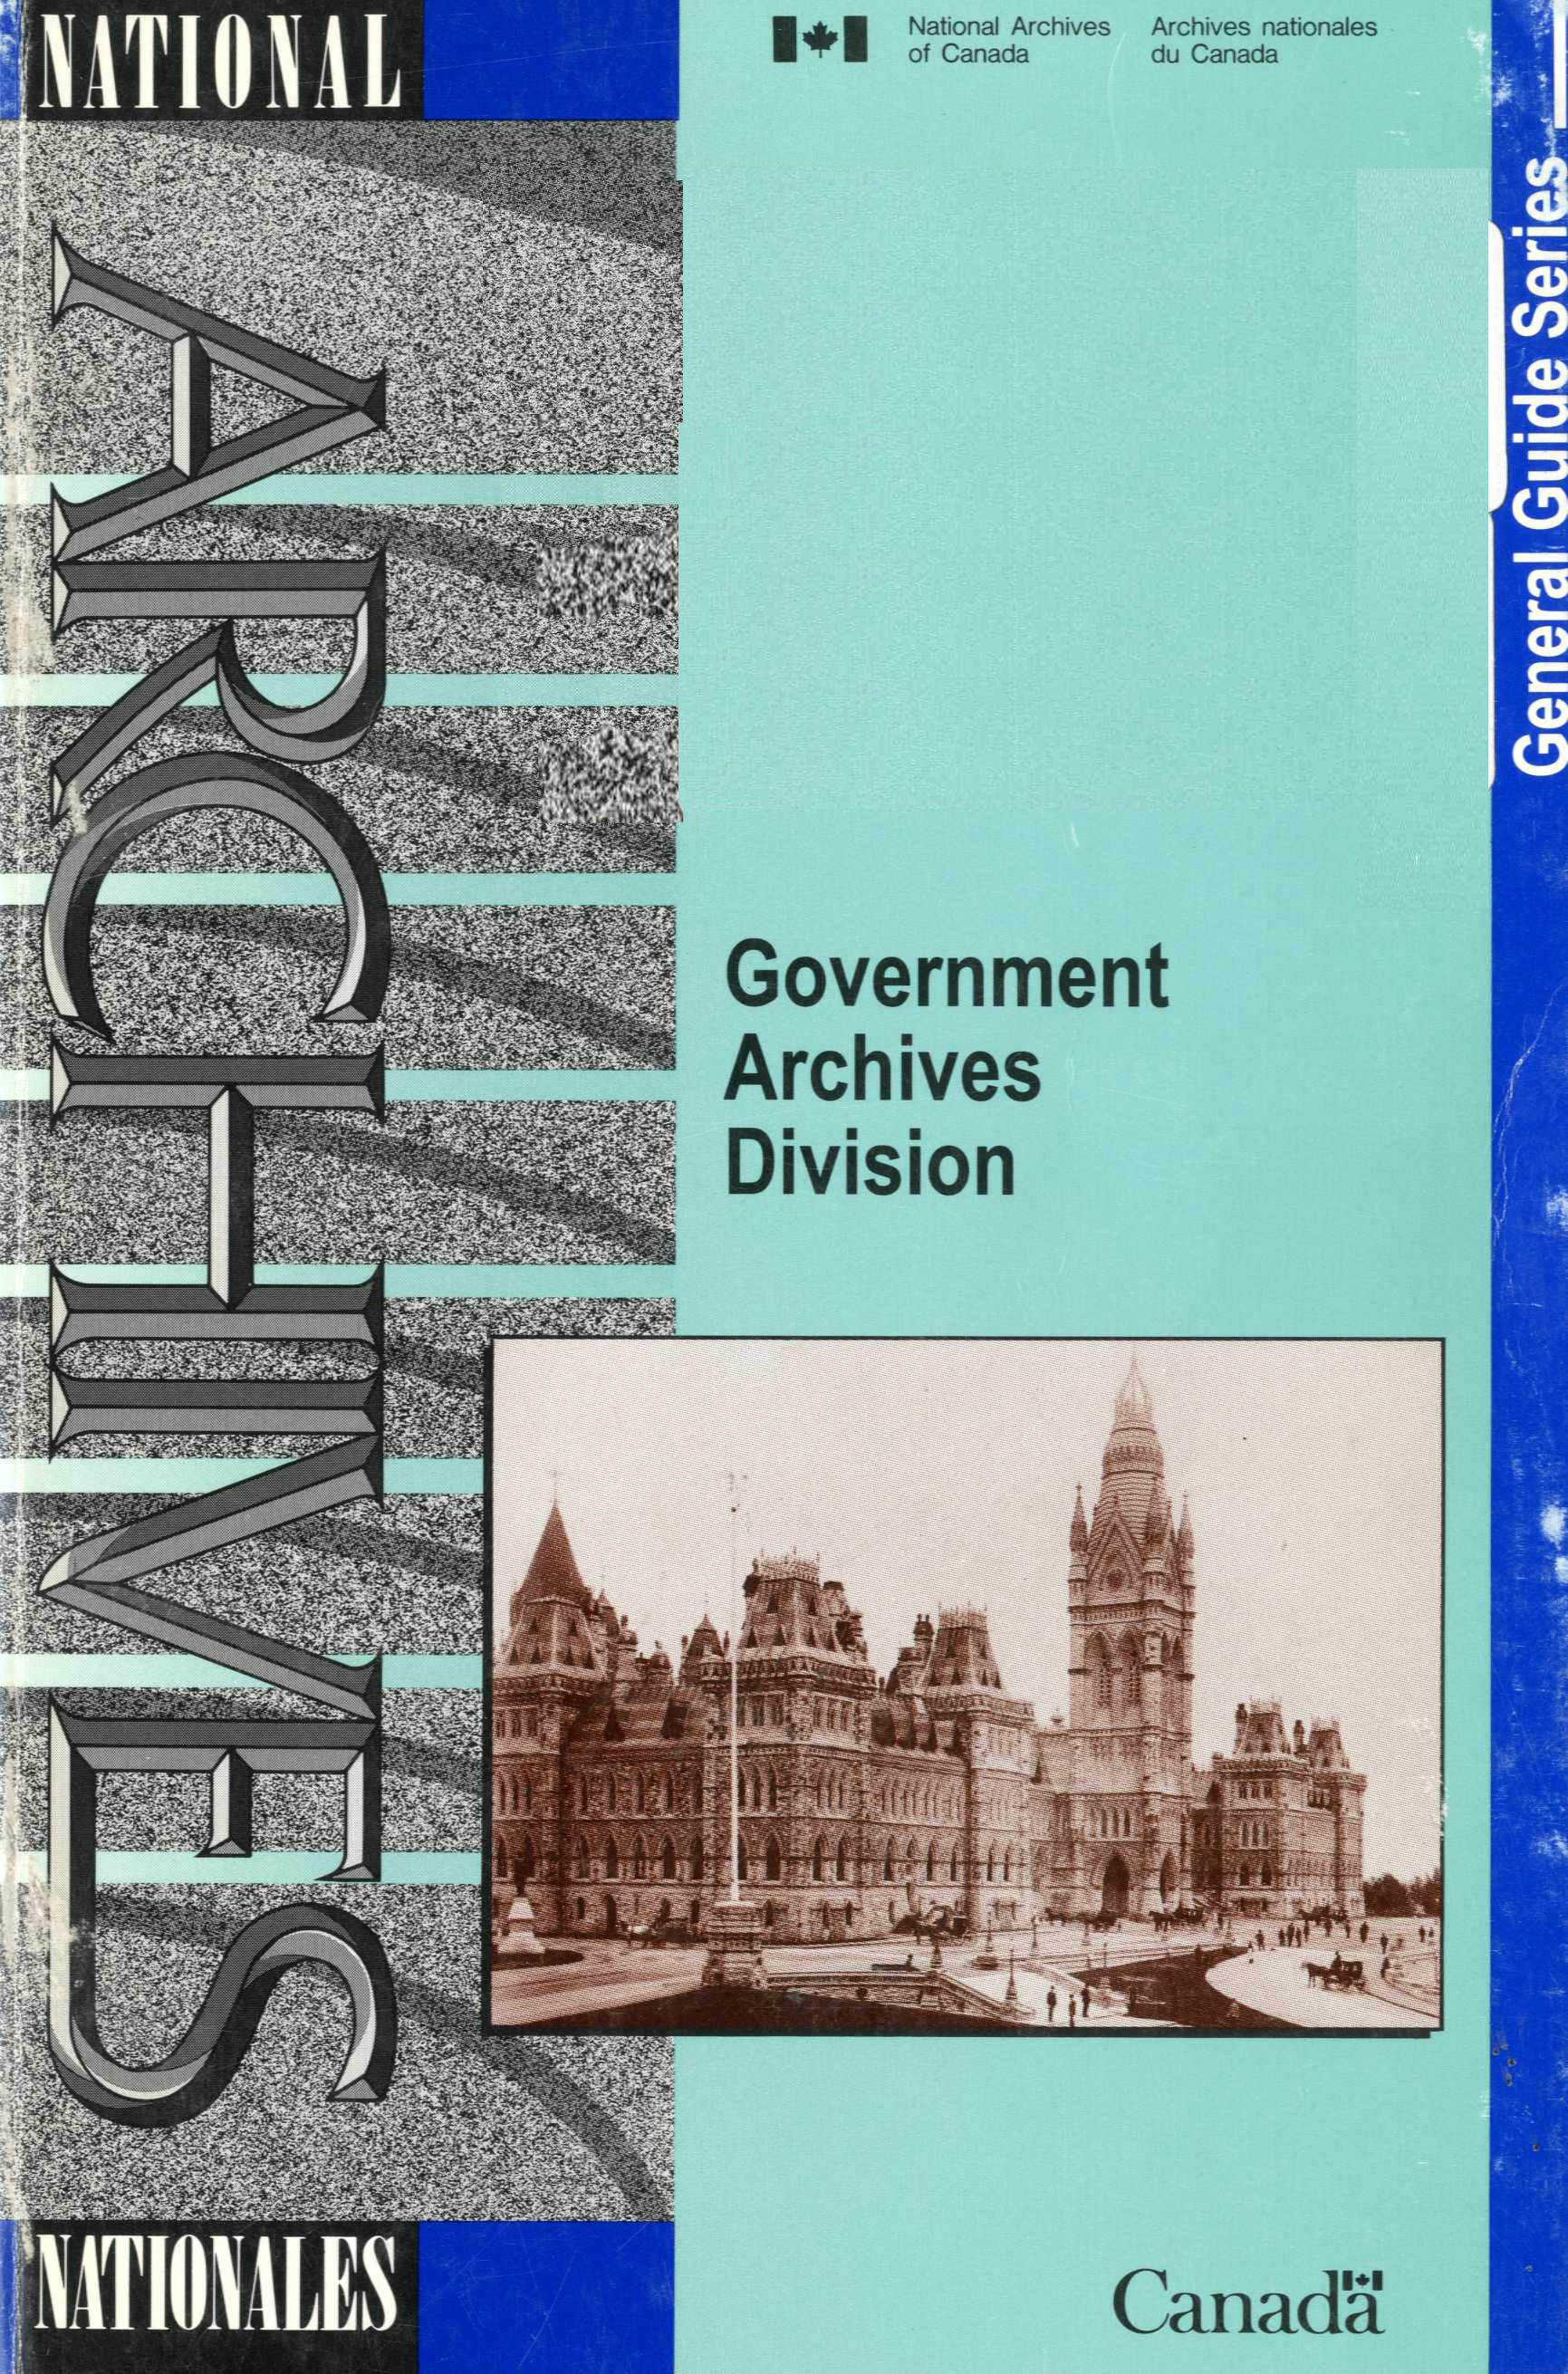 Archives: Government Archives Division Image